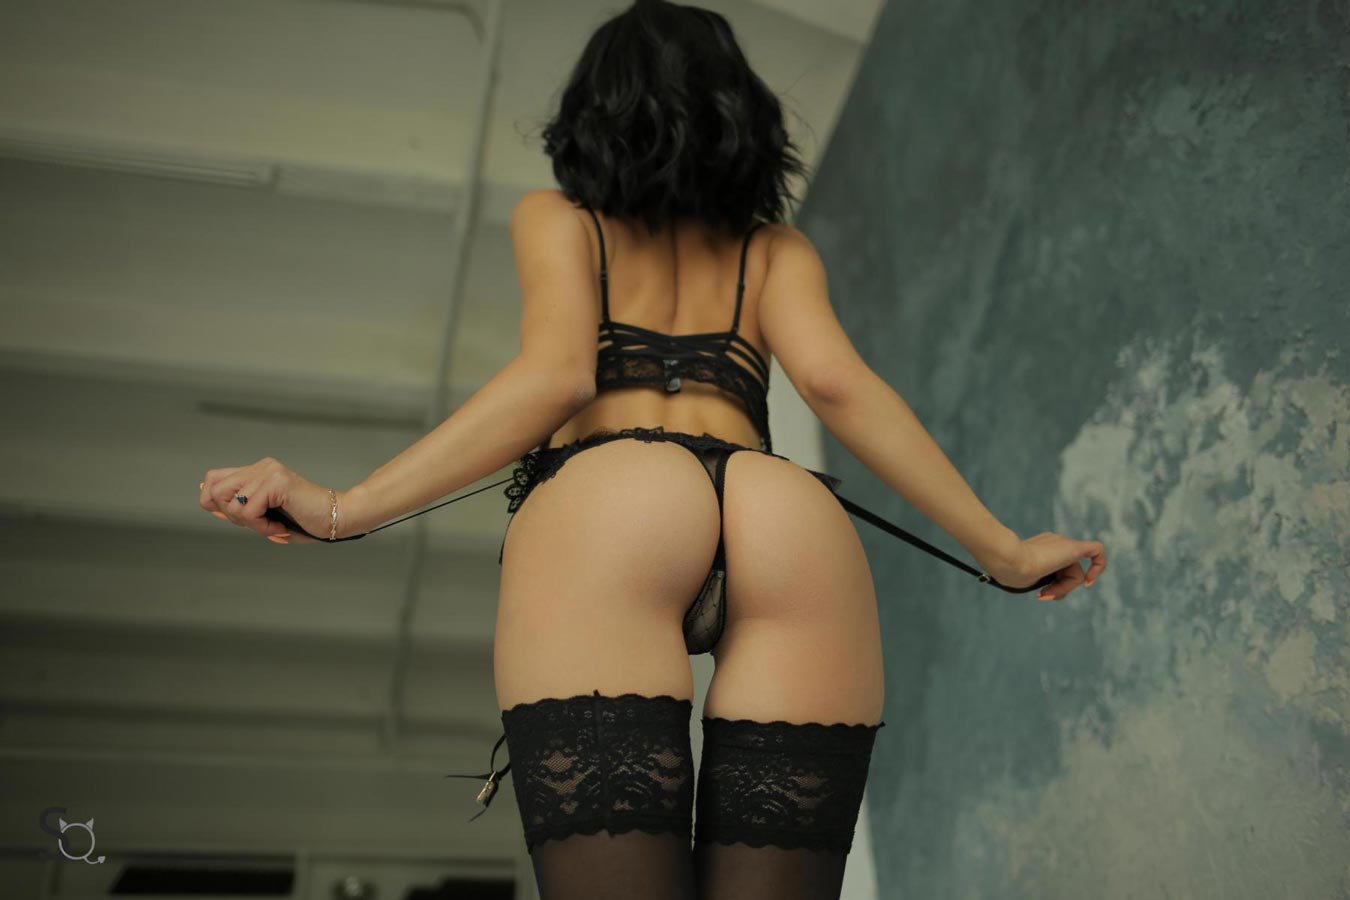 AshleyQ giving a nice close up of her sexy bum in black lingerie and stockings-StasyQ